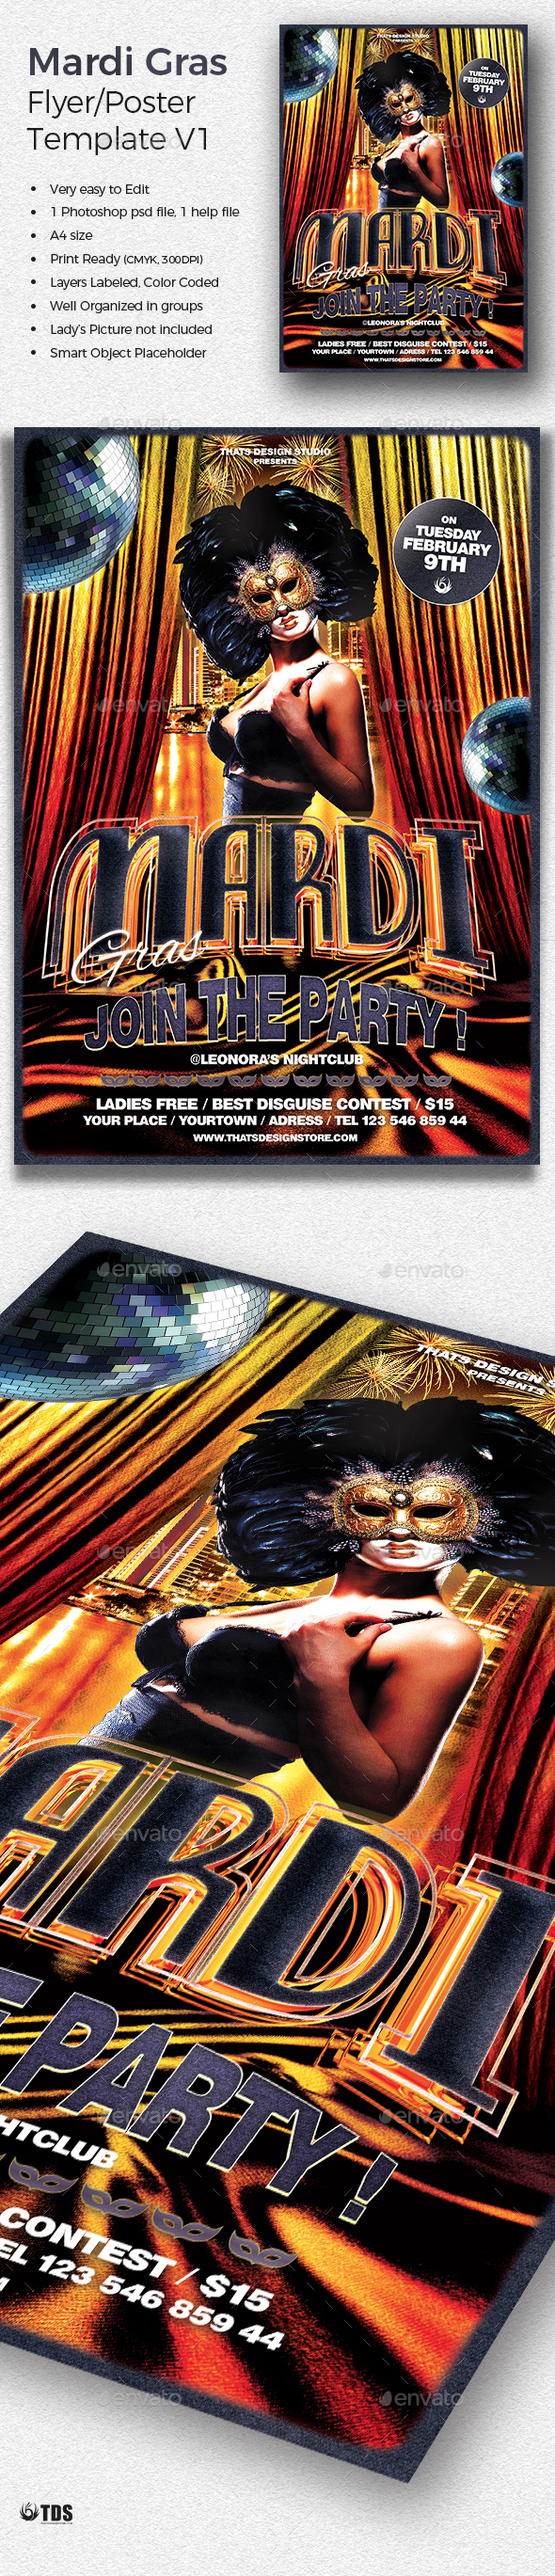 Mardi Gras Flyer Template V1 - Clubs & Parties Events